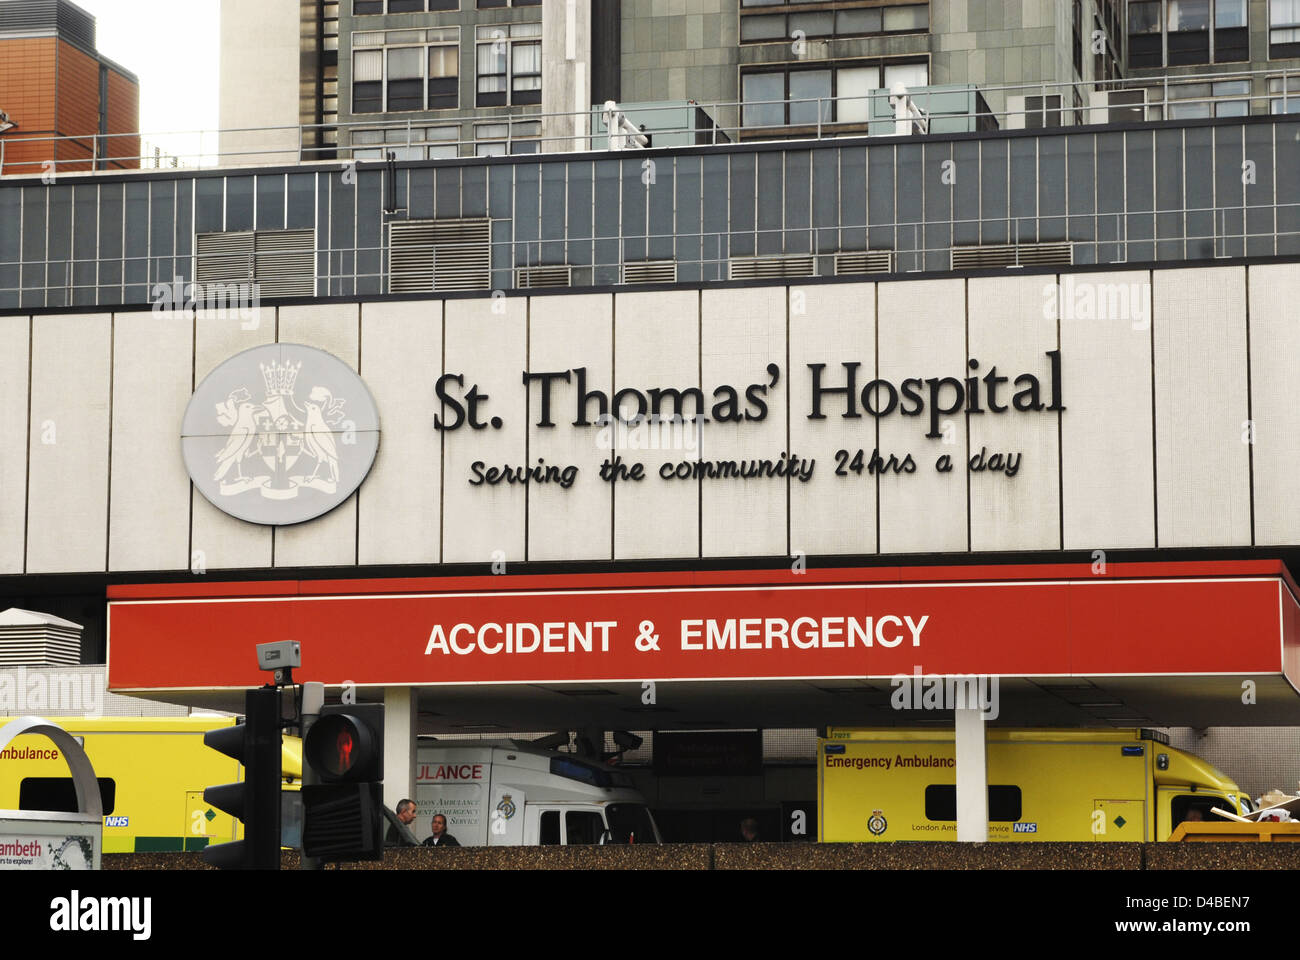 UK Founded almost 900 years ago in 12th century hospital now part Guys & St Thomas NHS Foundation Trust continues - Stock Image